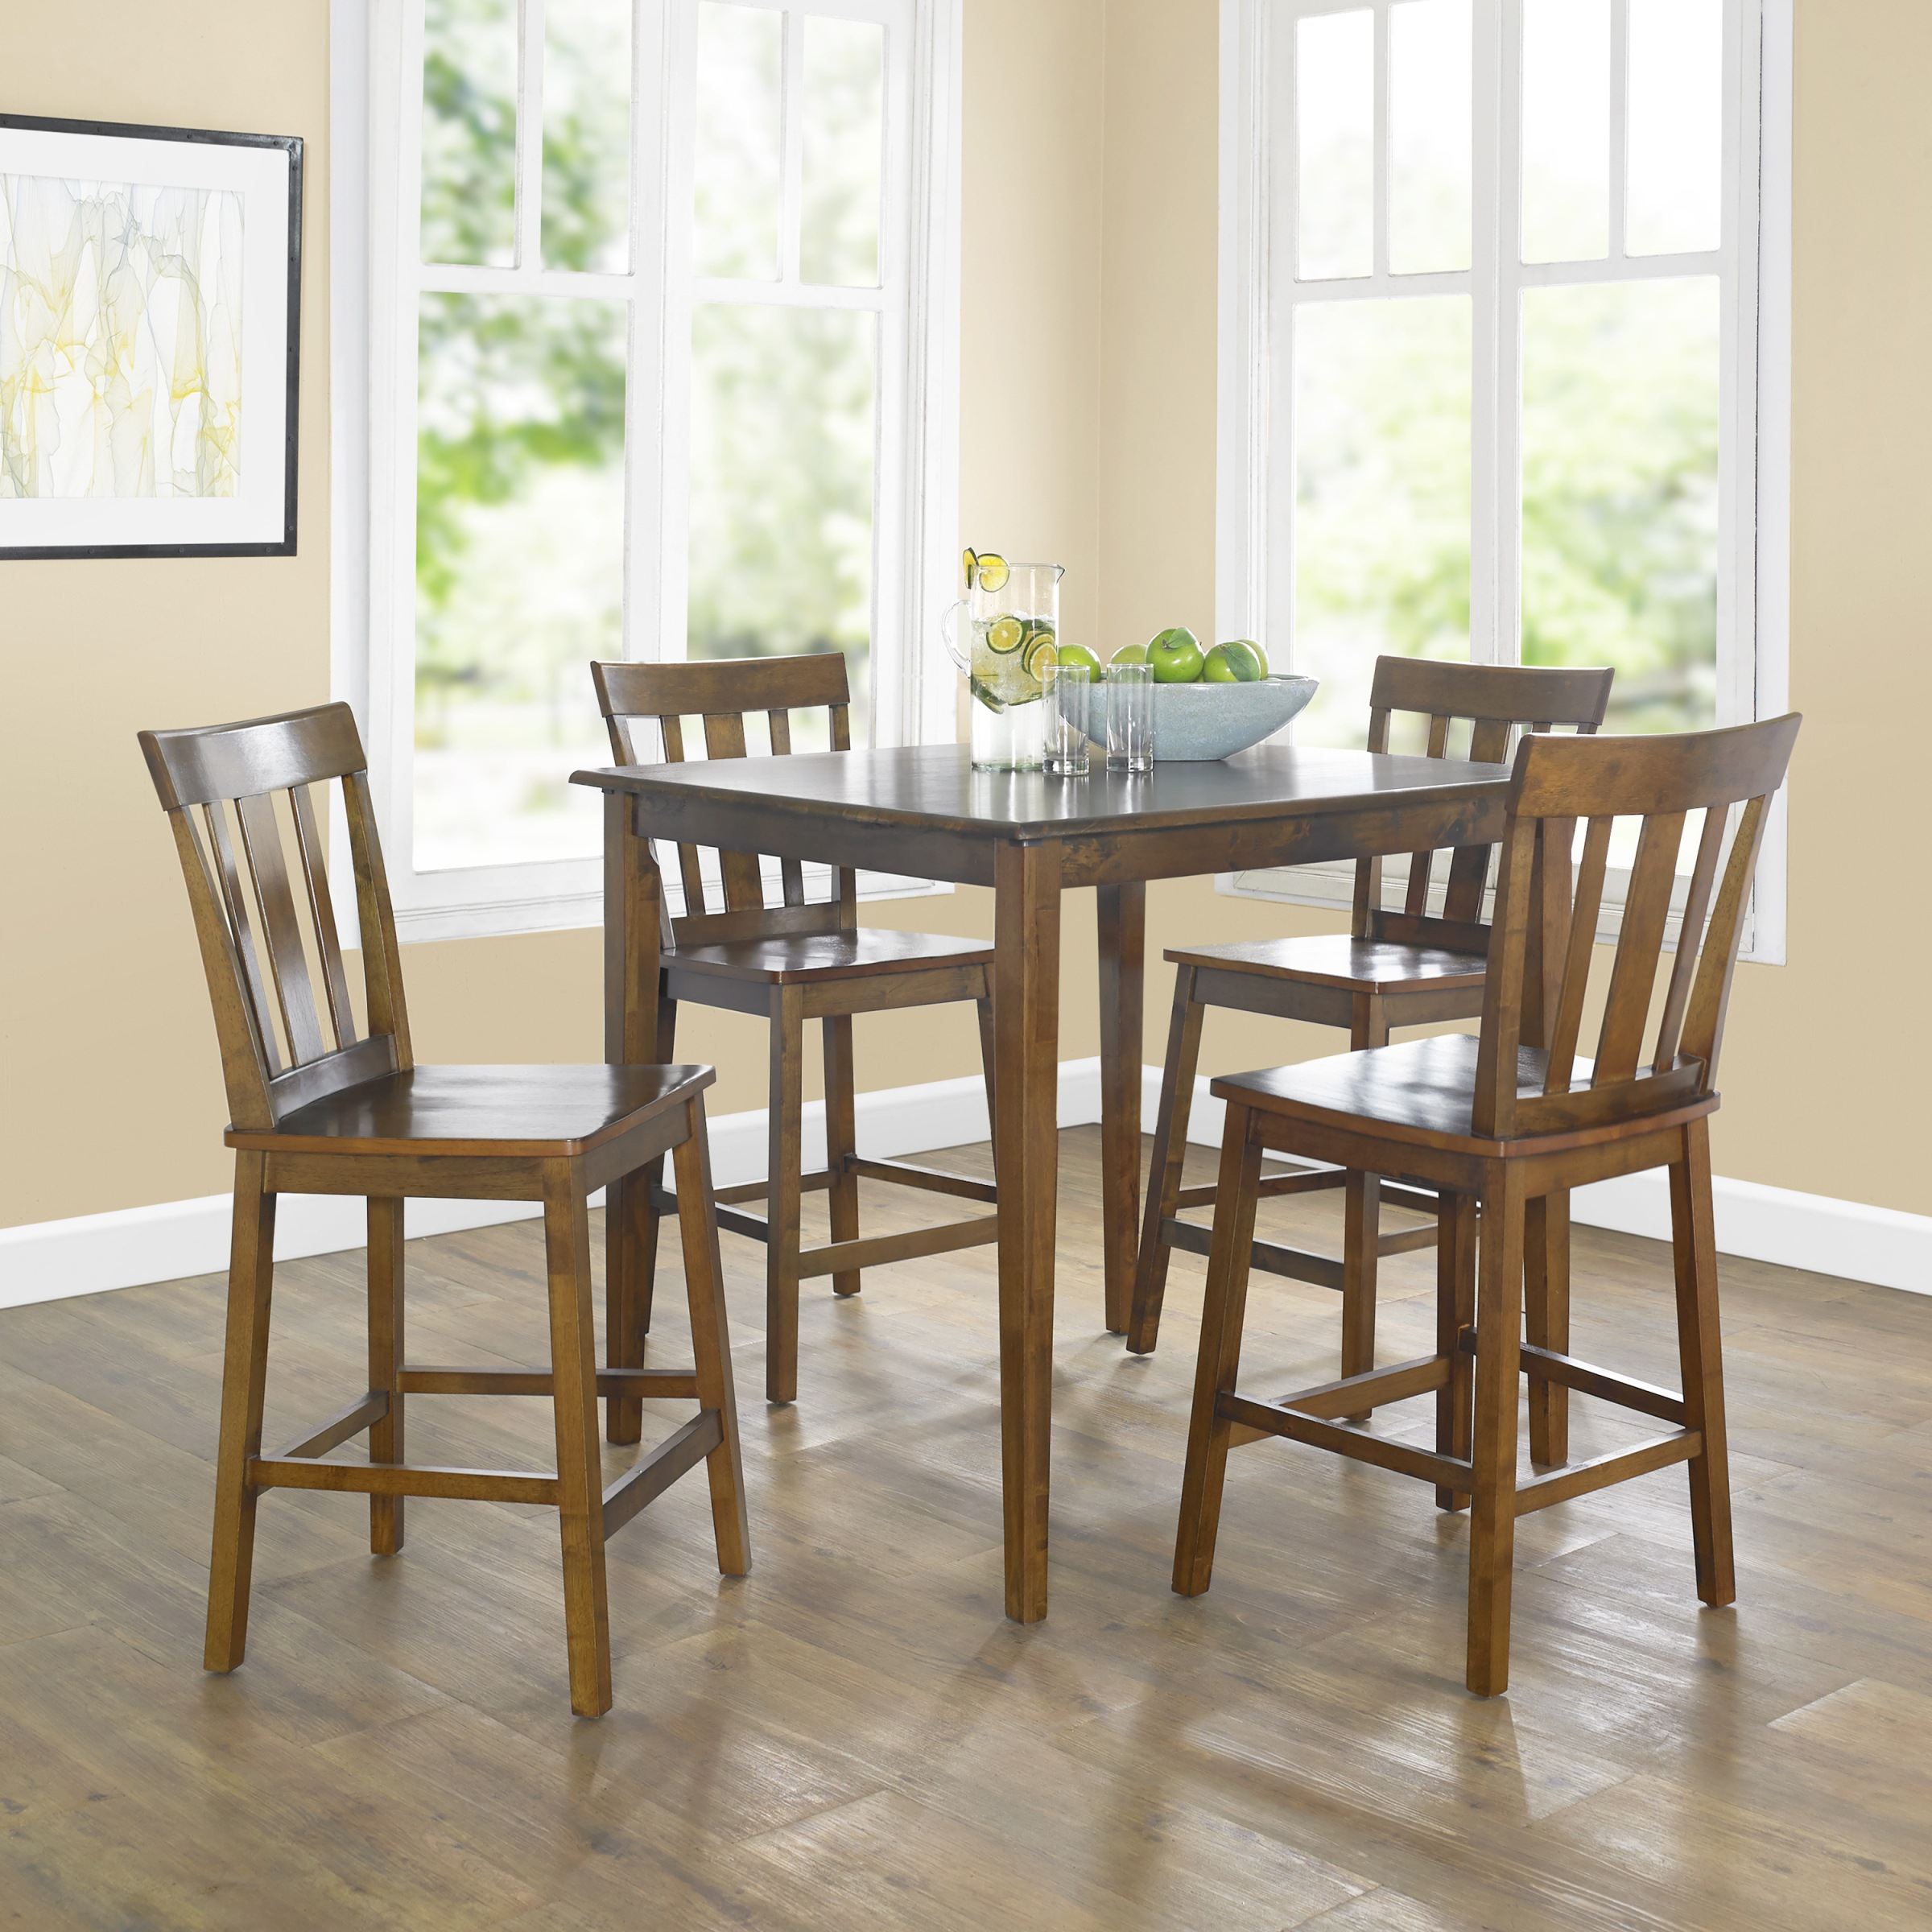 Kitchen & Dining Furniture – Walmart Intended For Newest Ligon 3 Piece Breakfast Nook Dining Sets (Image 10 of 20)